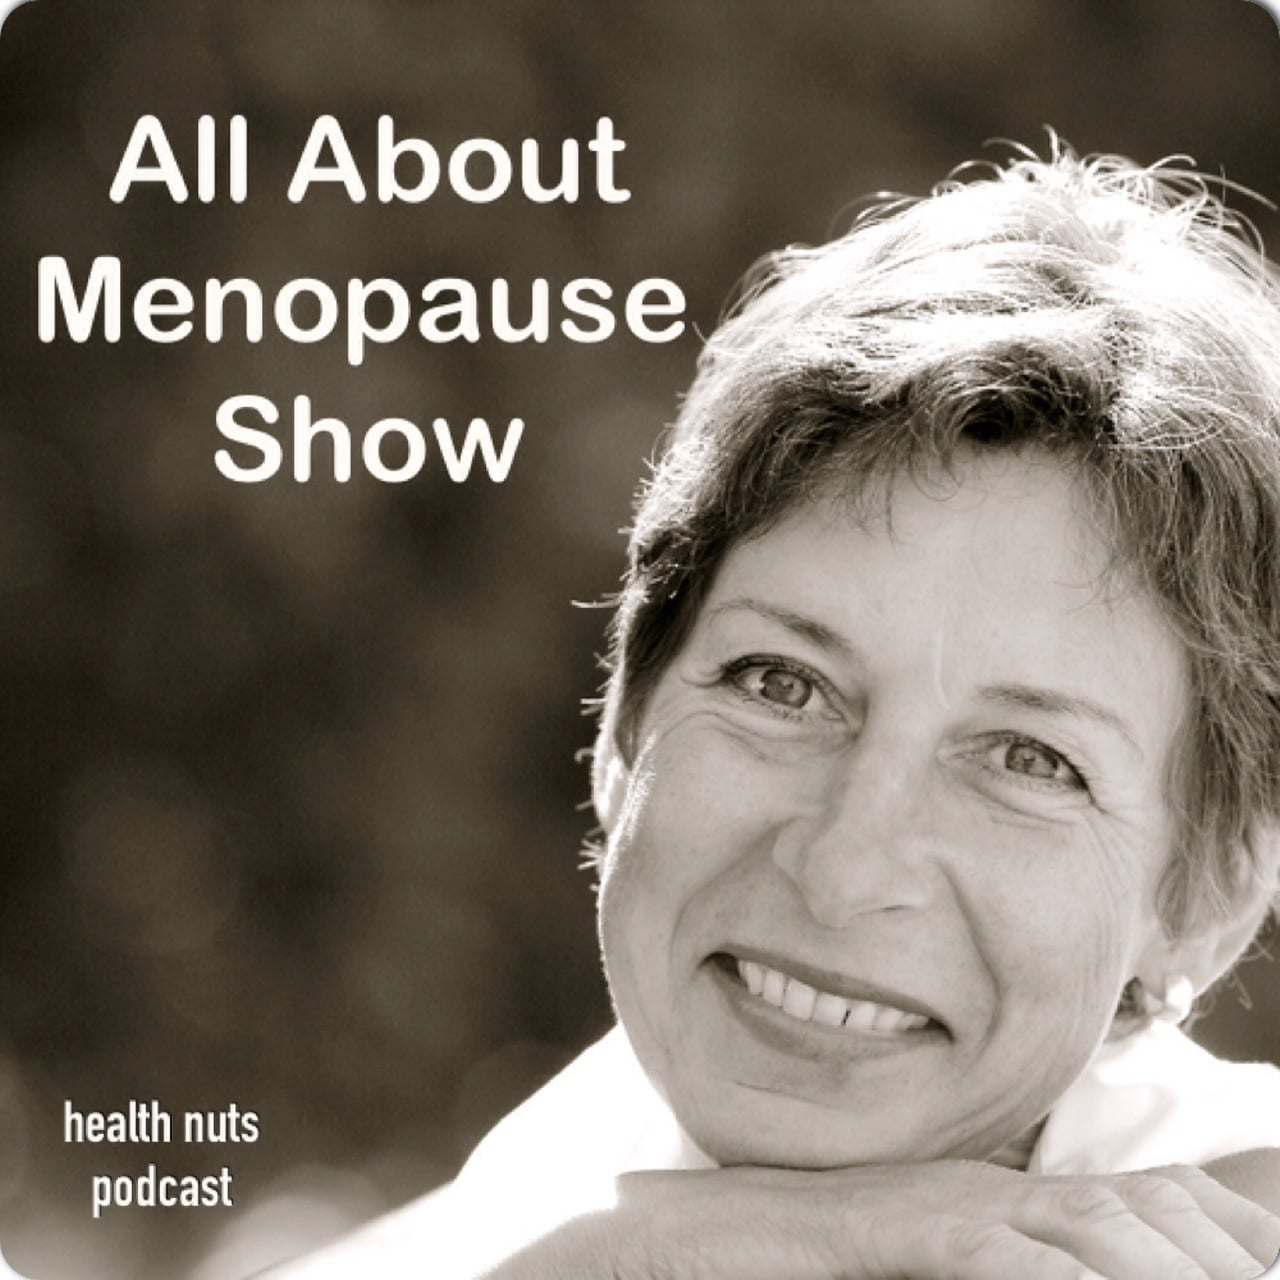 PodCast 18: Menopause with Naturopathic Dr. Lauren Noel